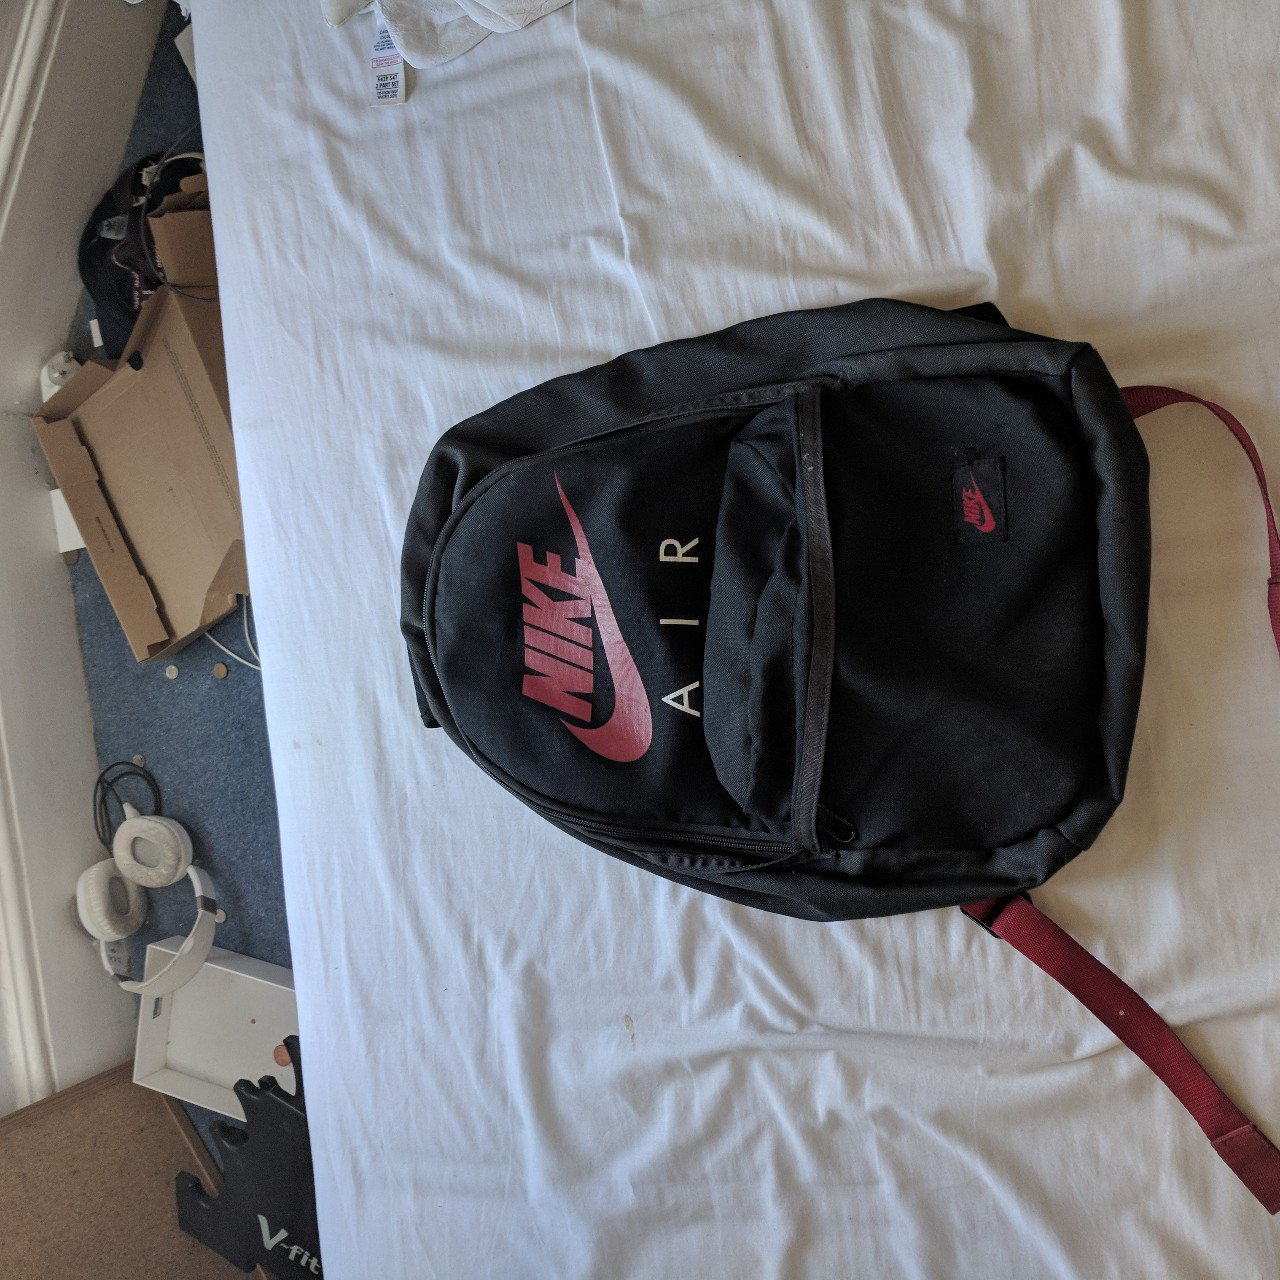 68206bd2ad4dfa Nike air bag in good condition 8 10. Black bag with red tick - Depop